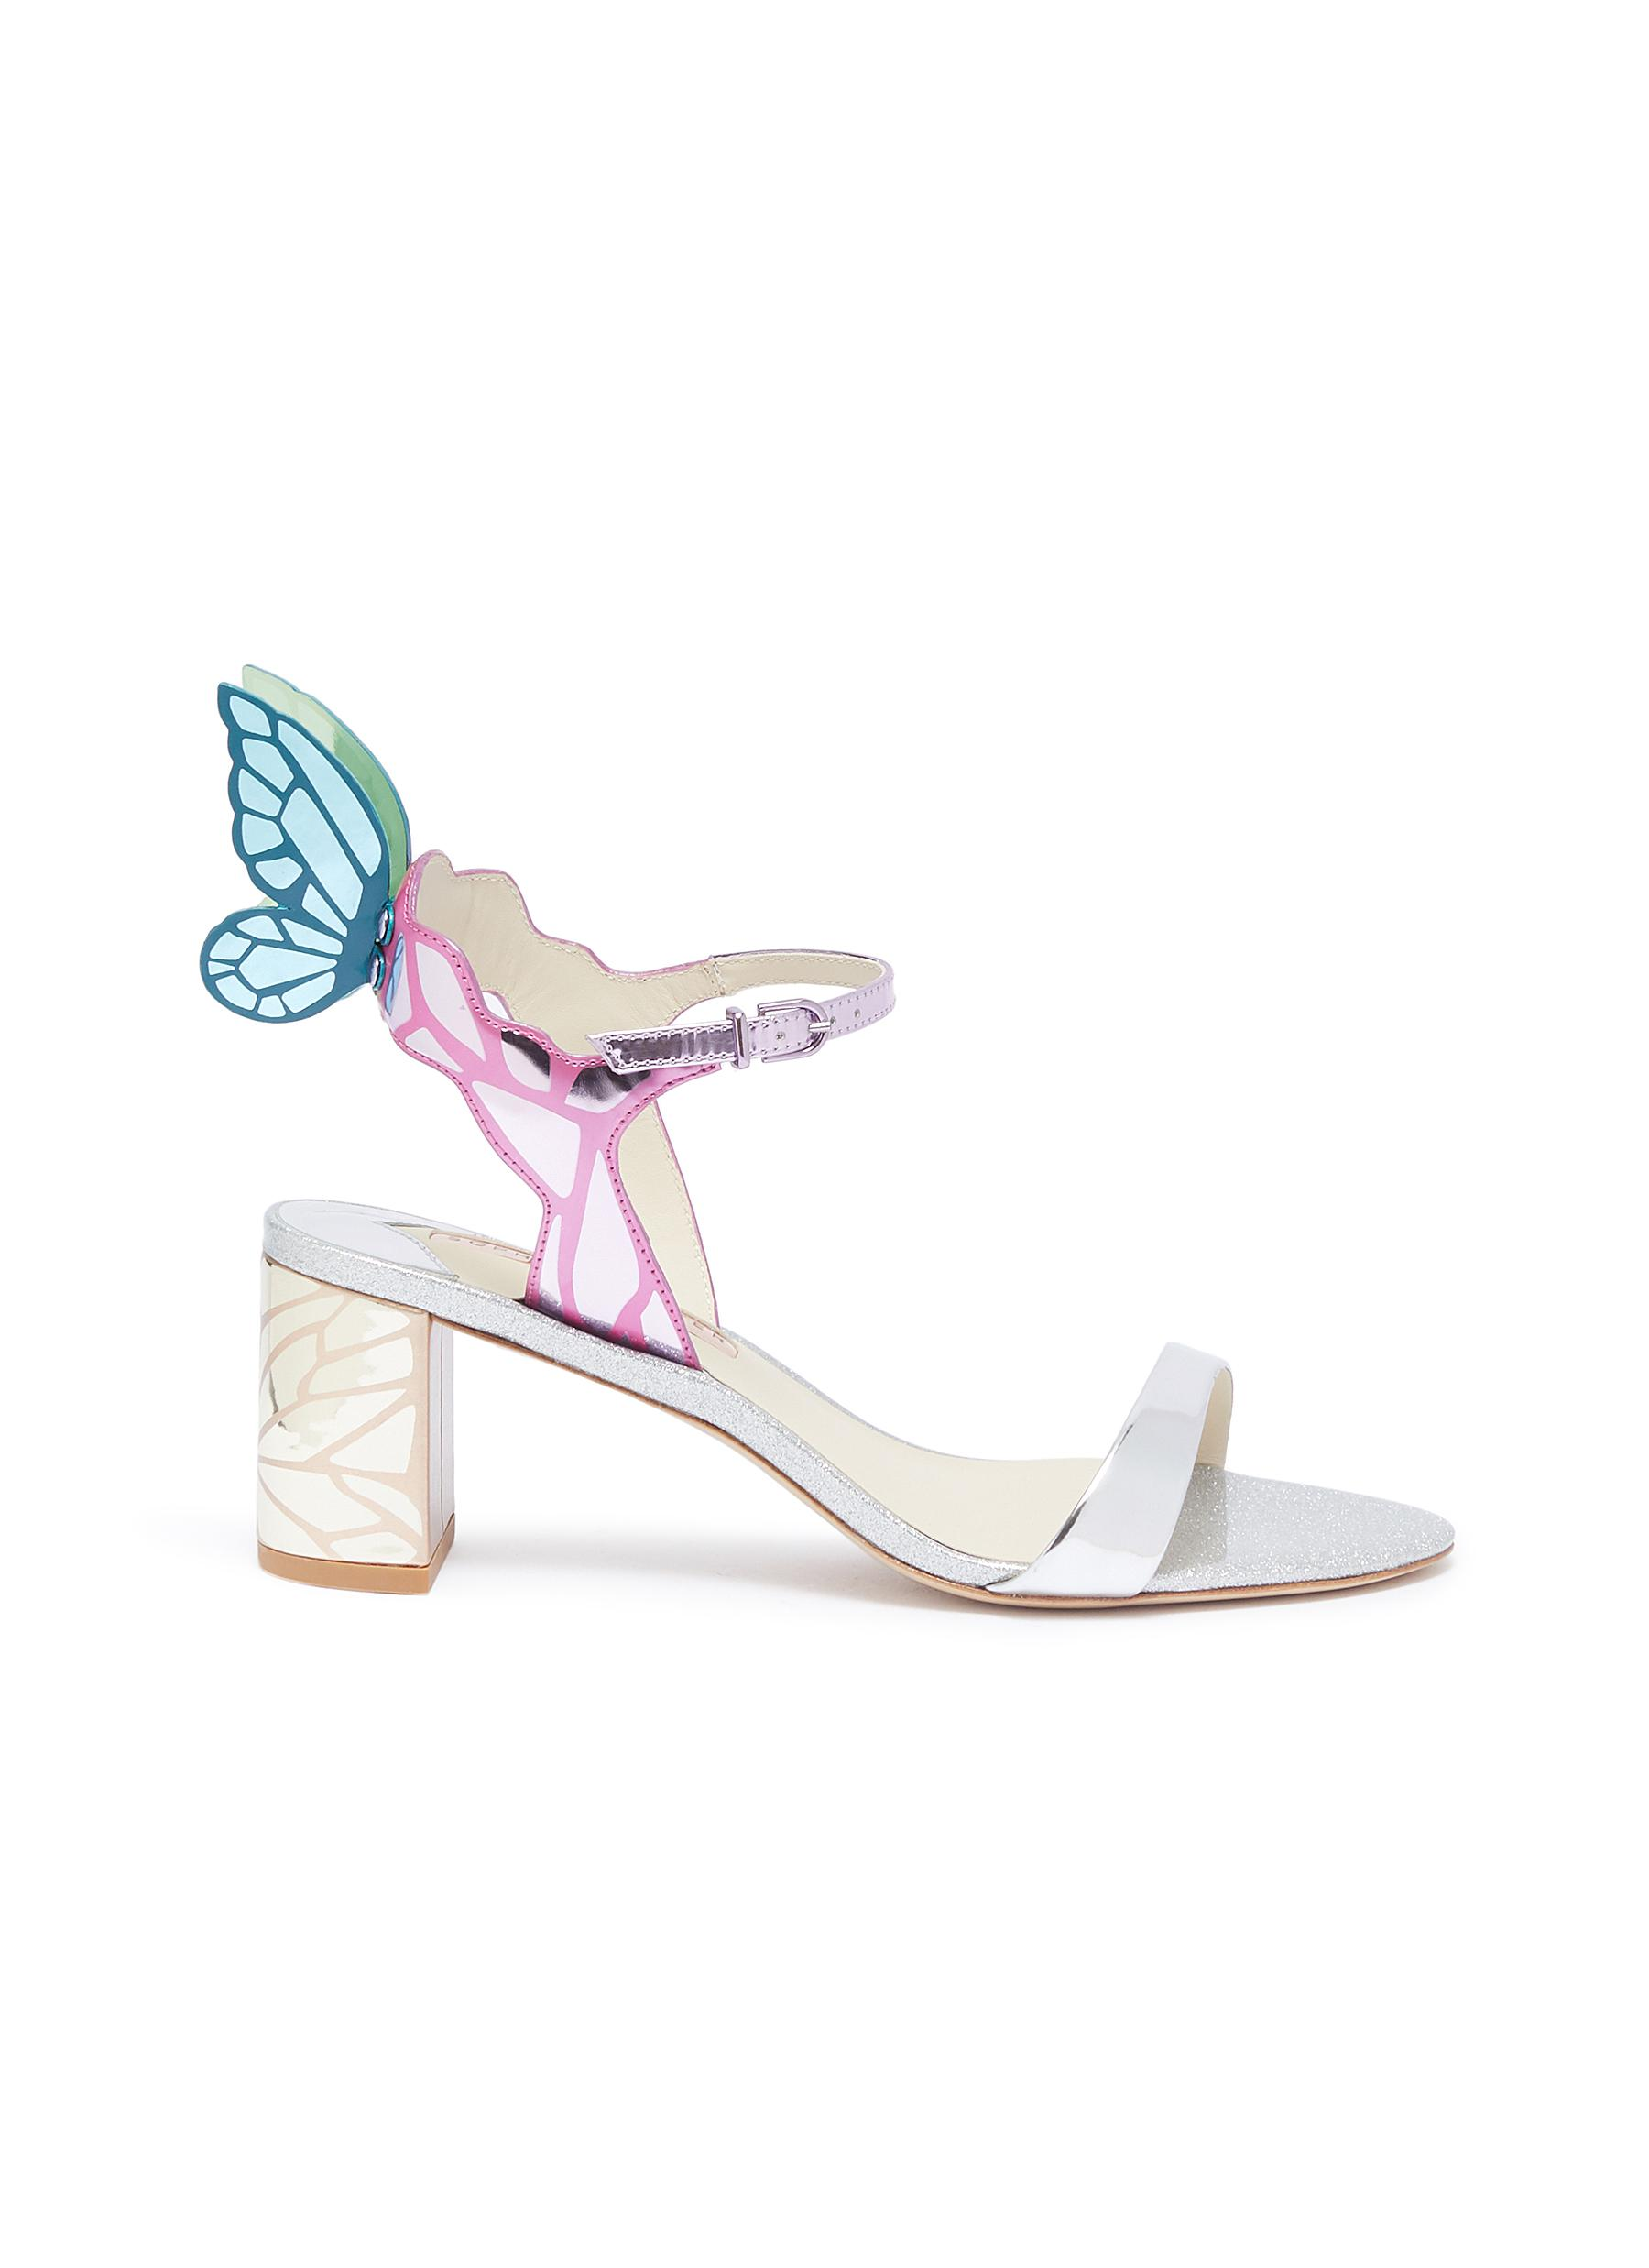 6464568cde SOPHIA WEBSTER | 'Chiara' butterfly wing mirror leather sandals ...